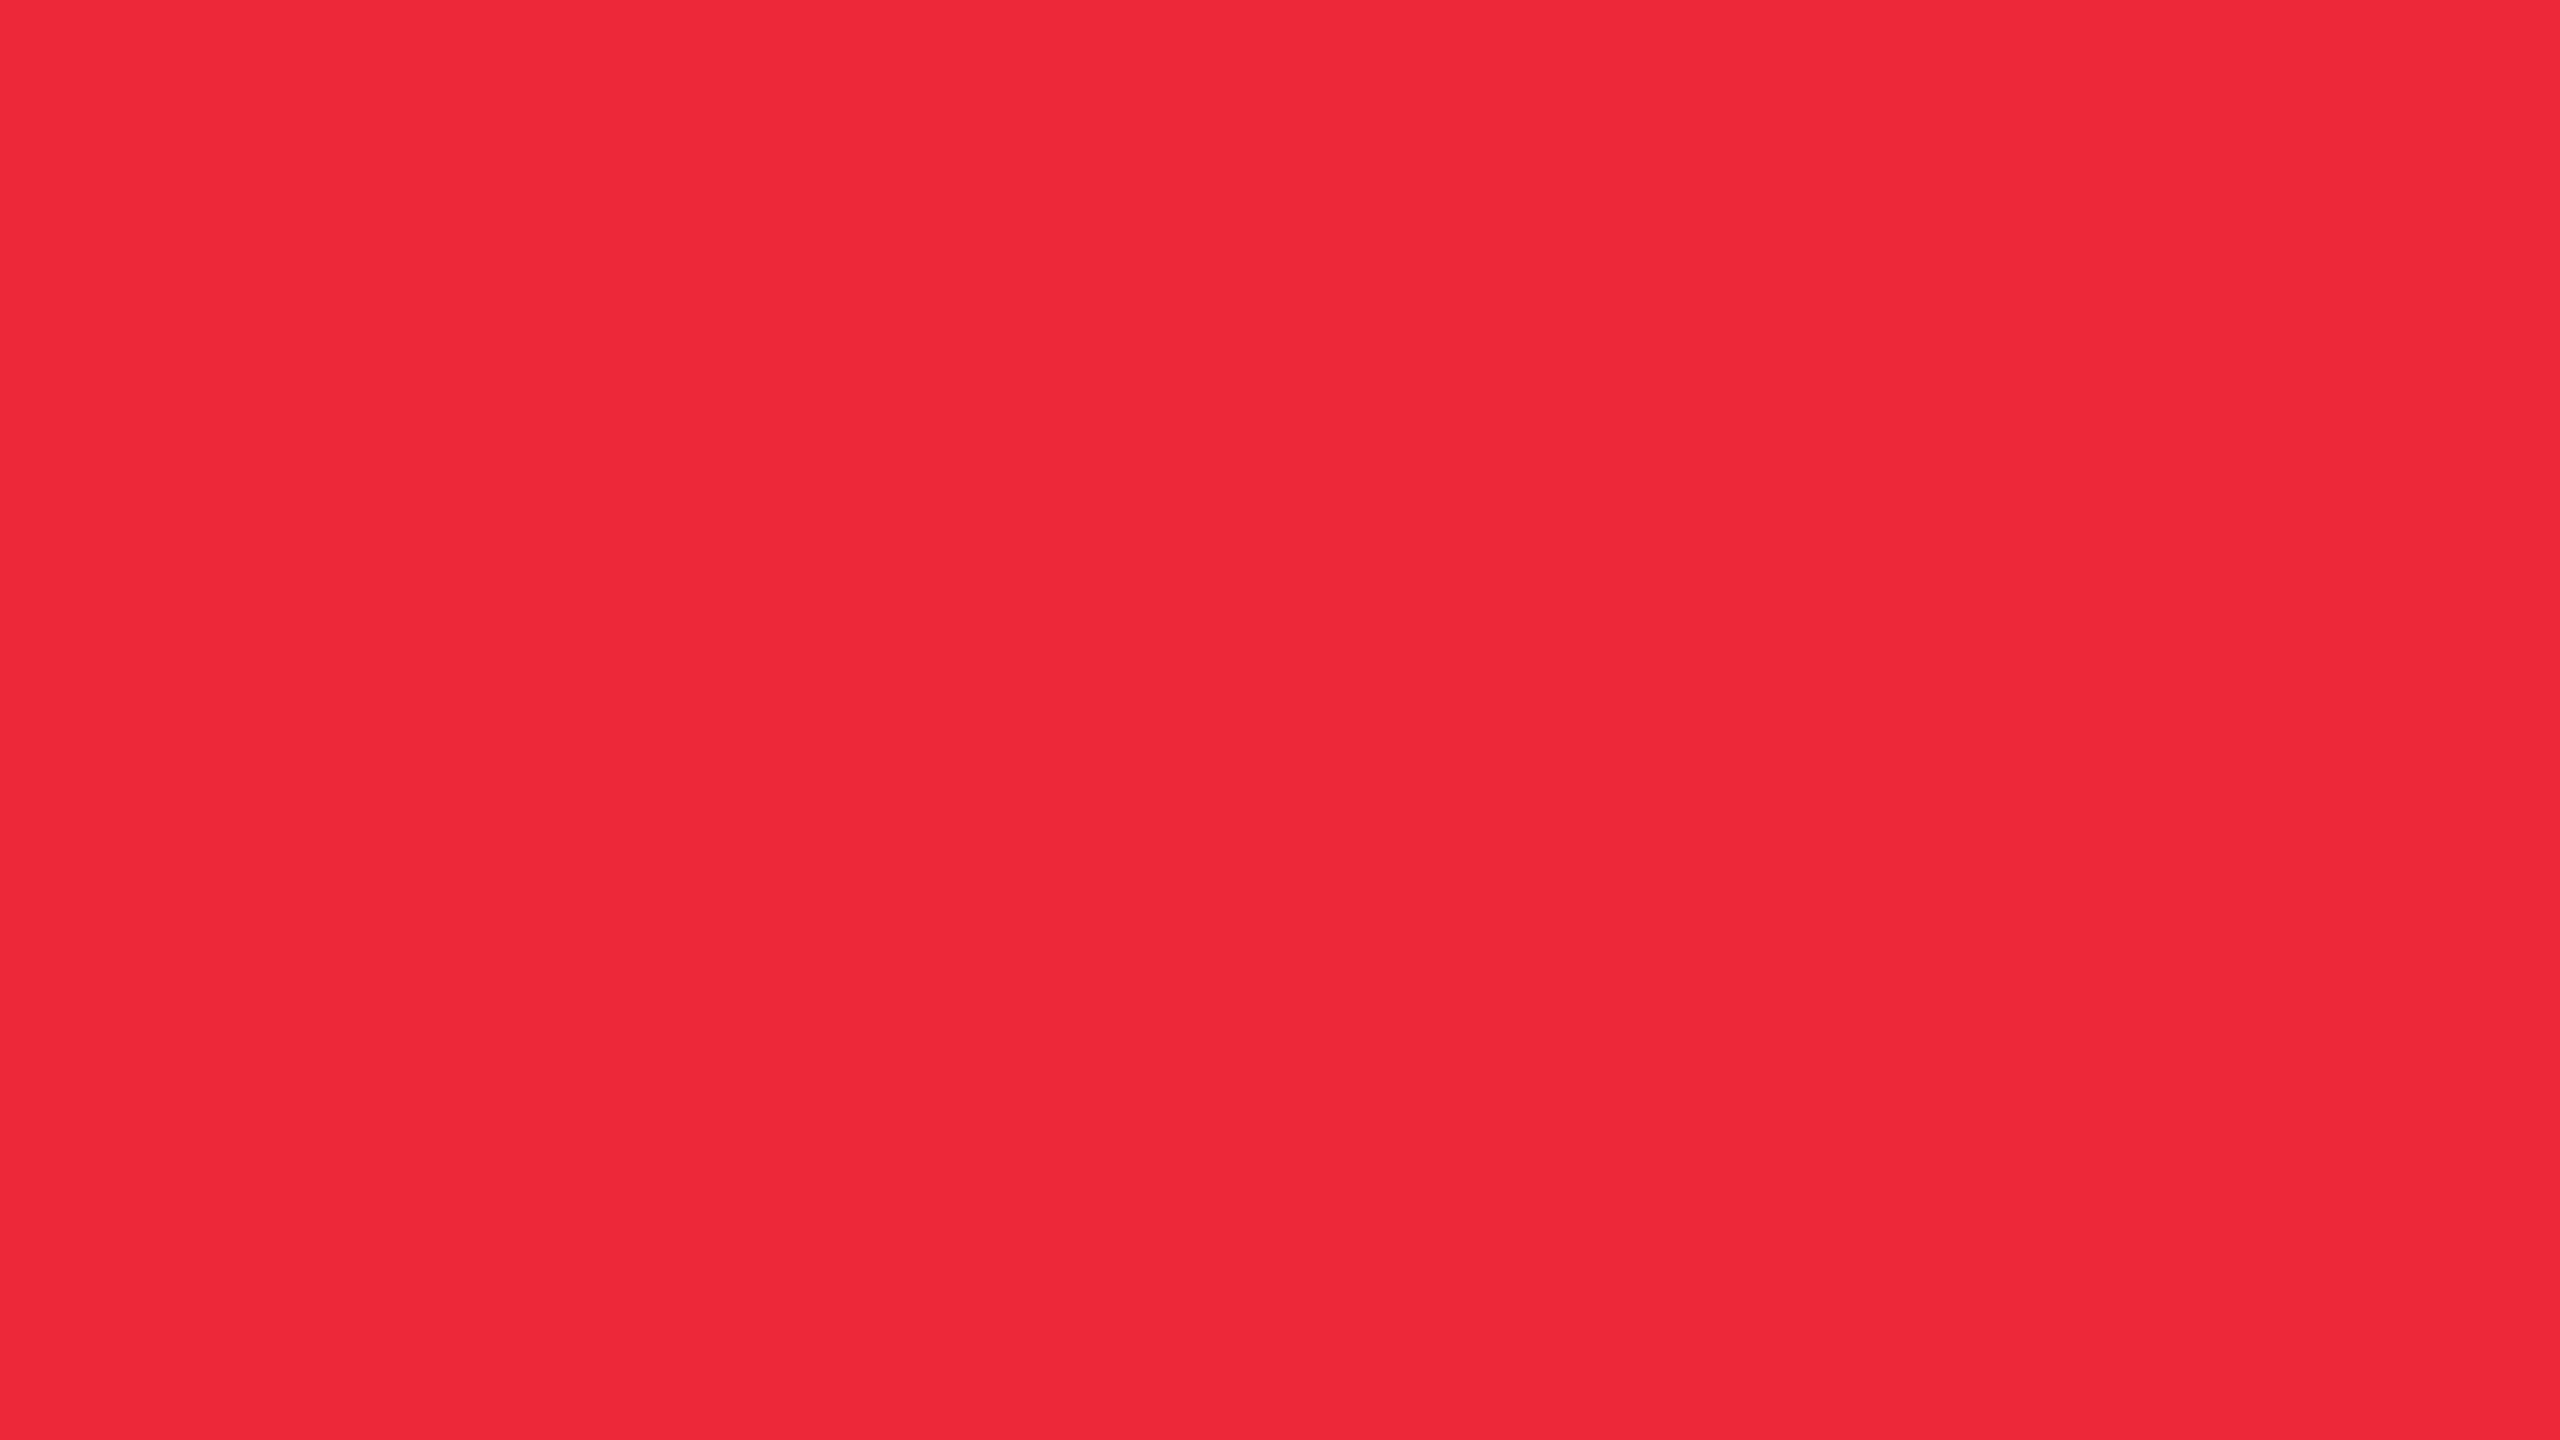 2560x1440 Imperial Red Solid Color Background